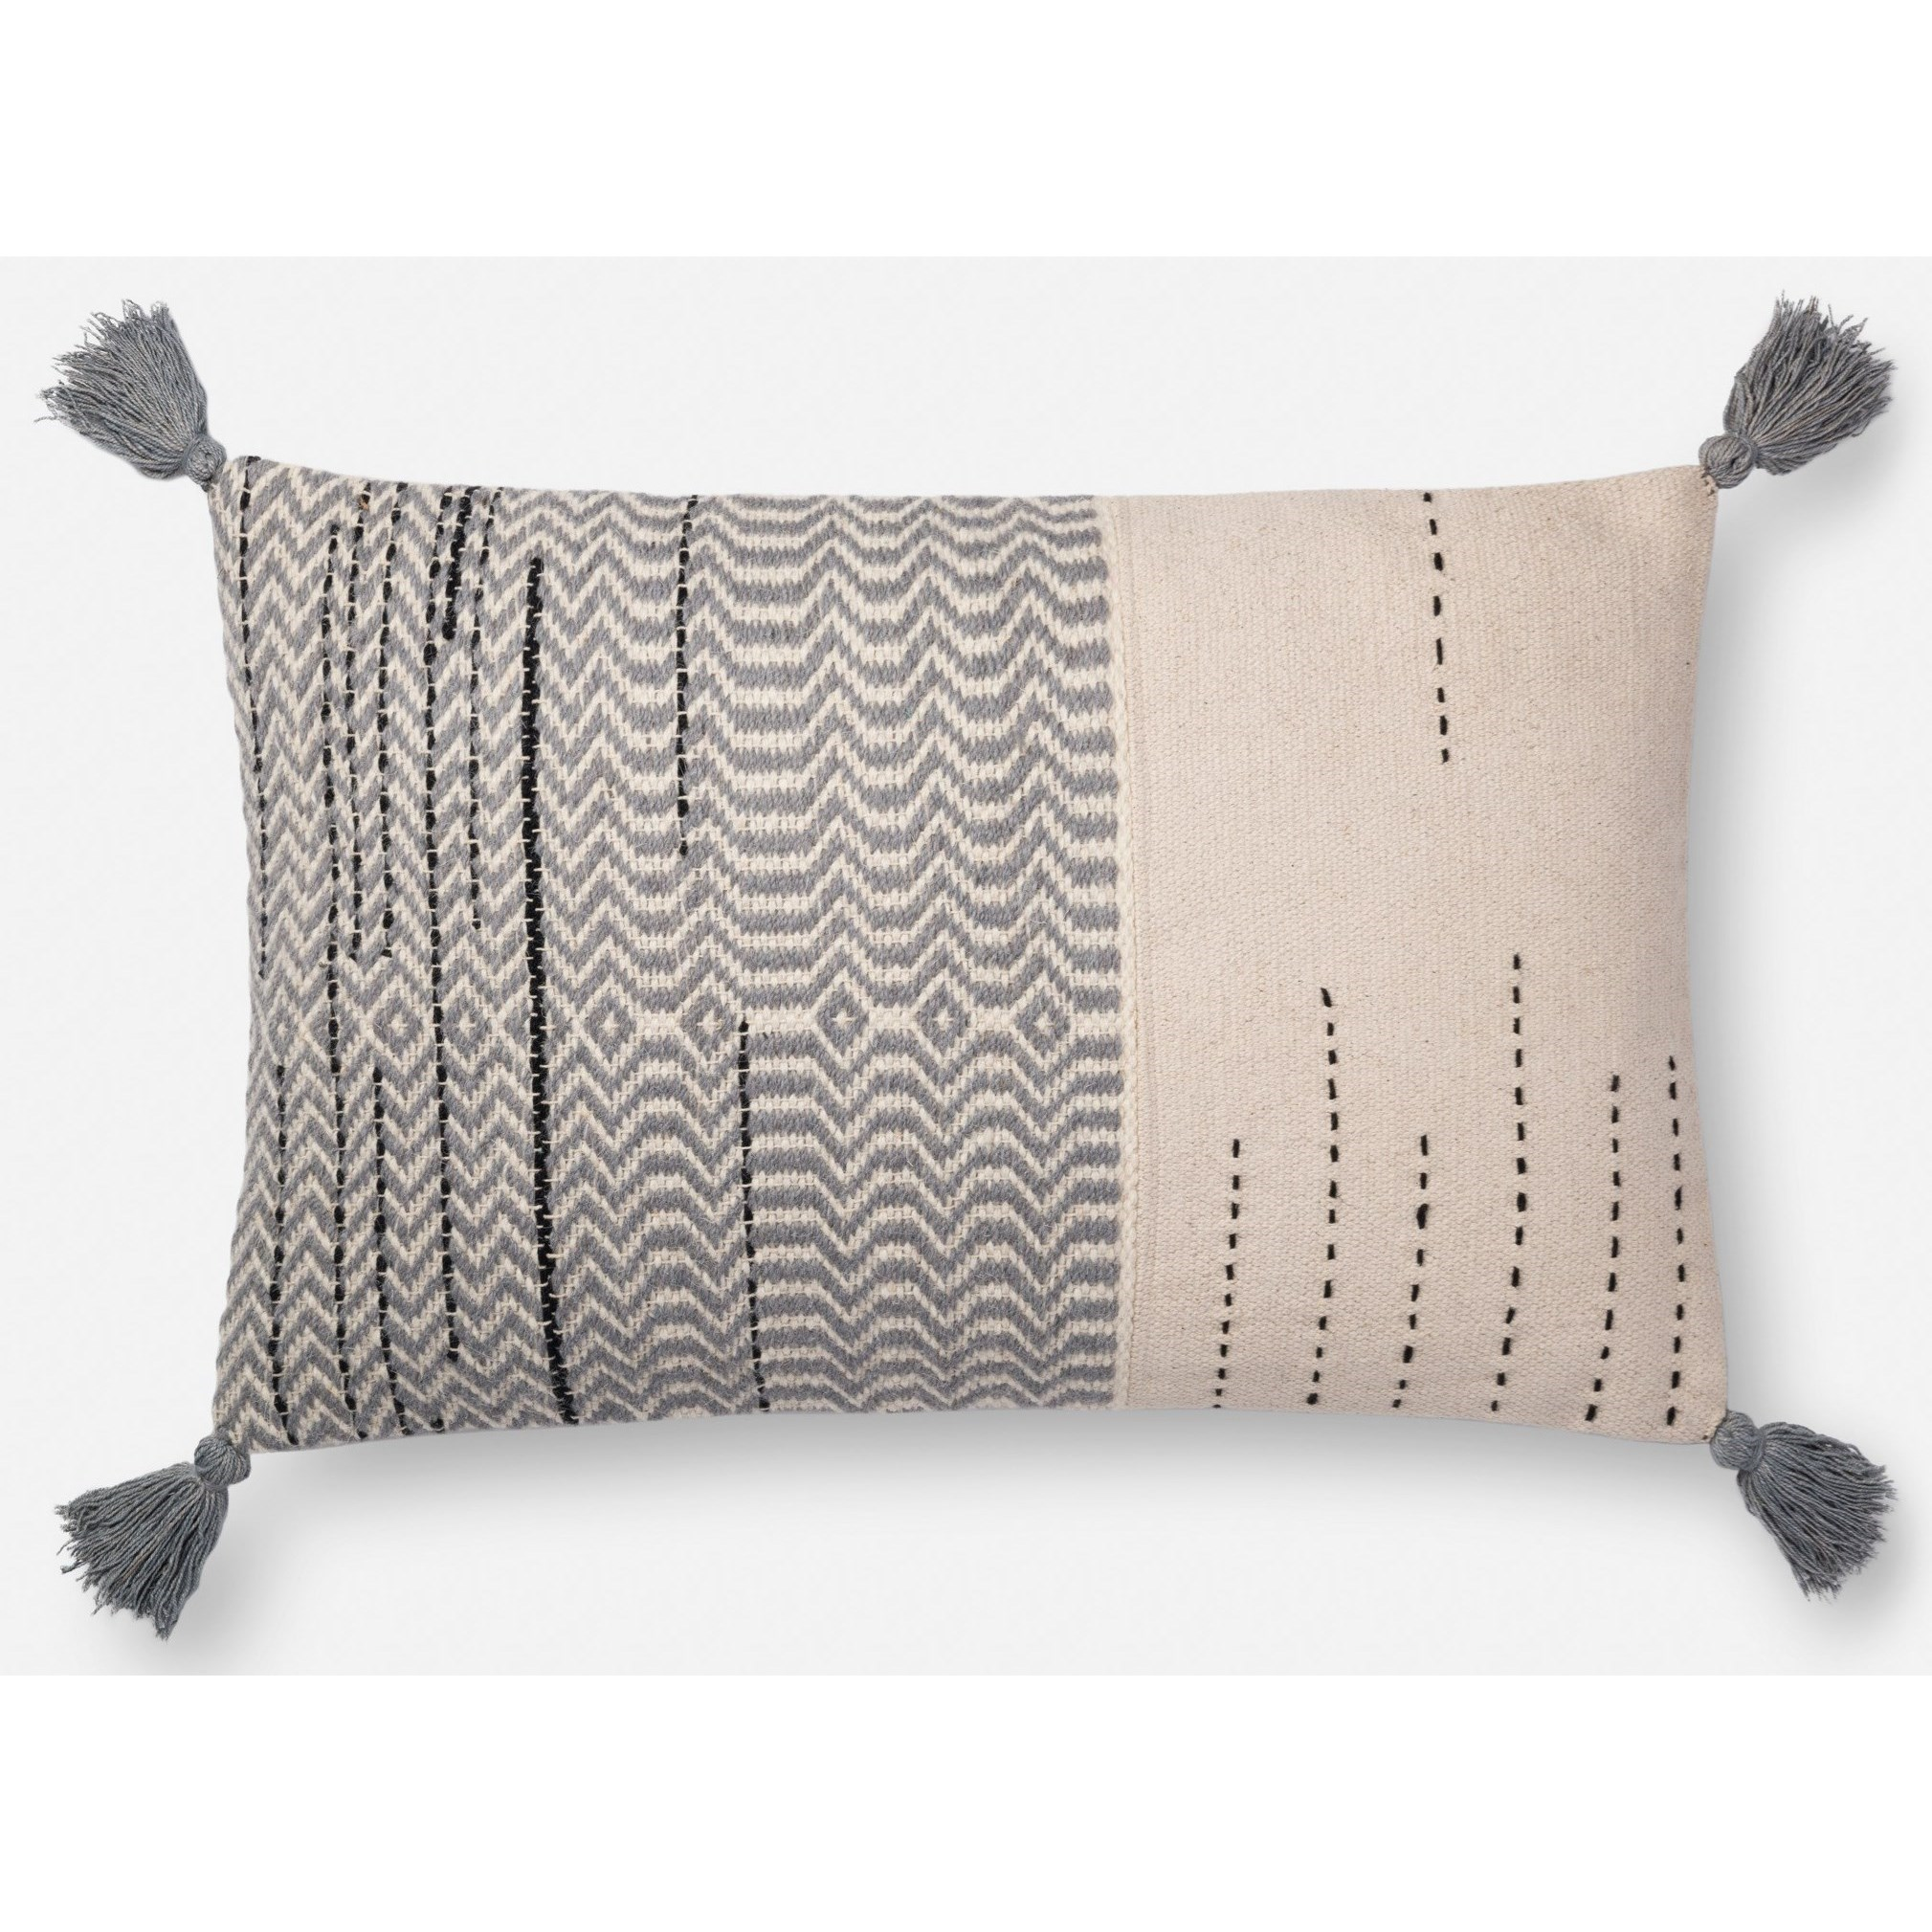 "16"" x 26"" Polyester Pillow"